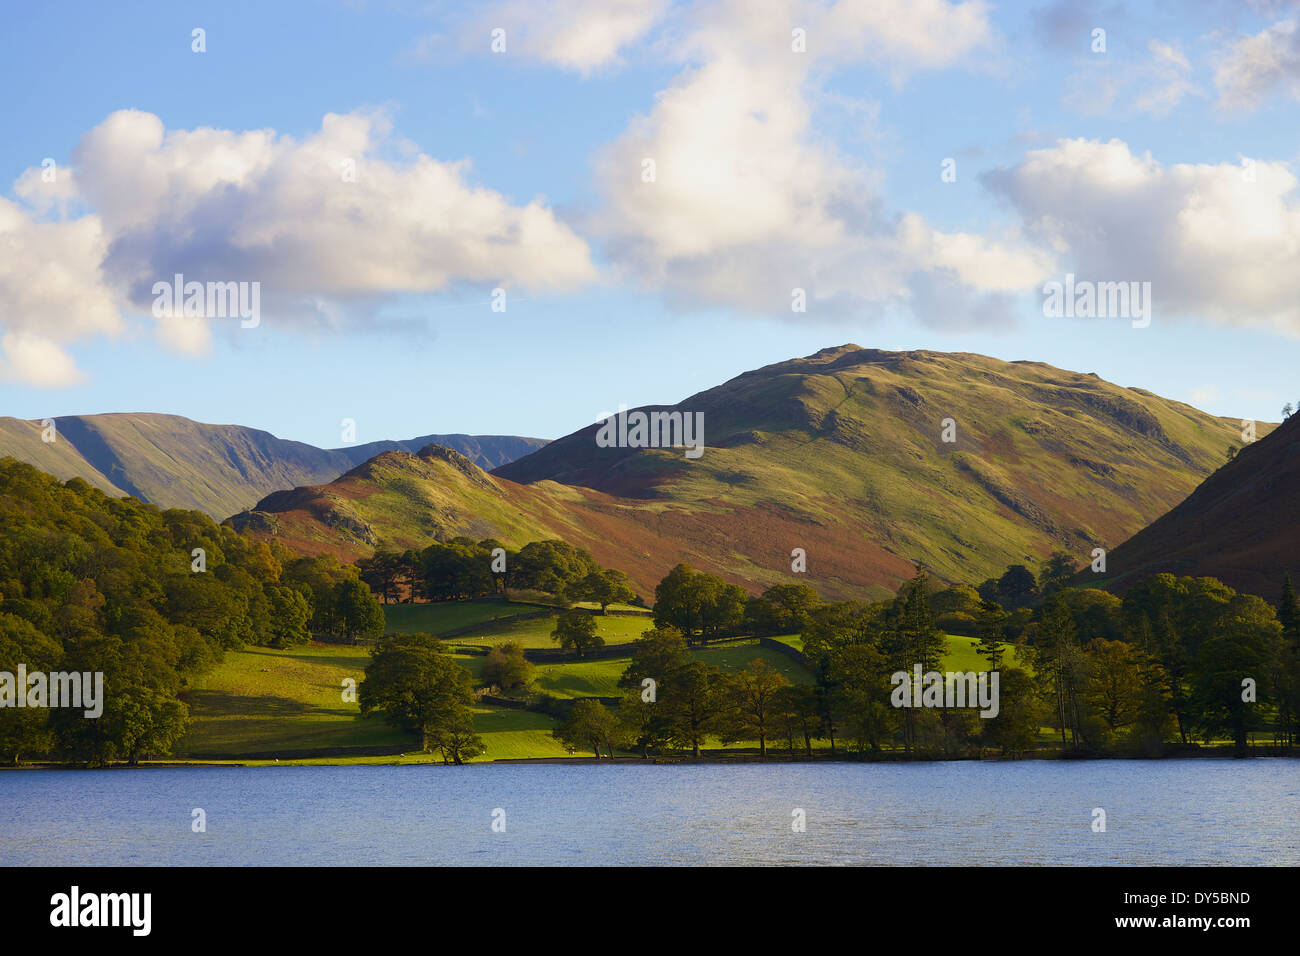 Lake scene with fields, trees and hills. Beda Head, Sandwick Bay, The Lake District, England. - Stock Image